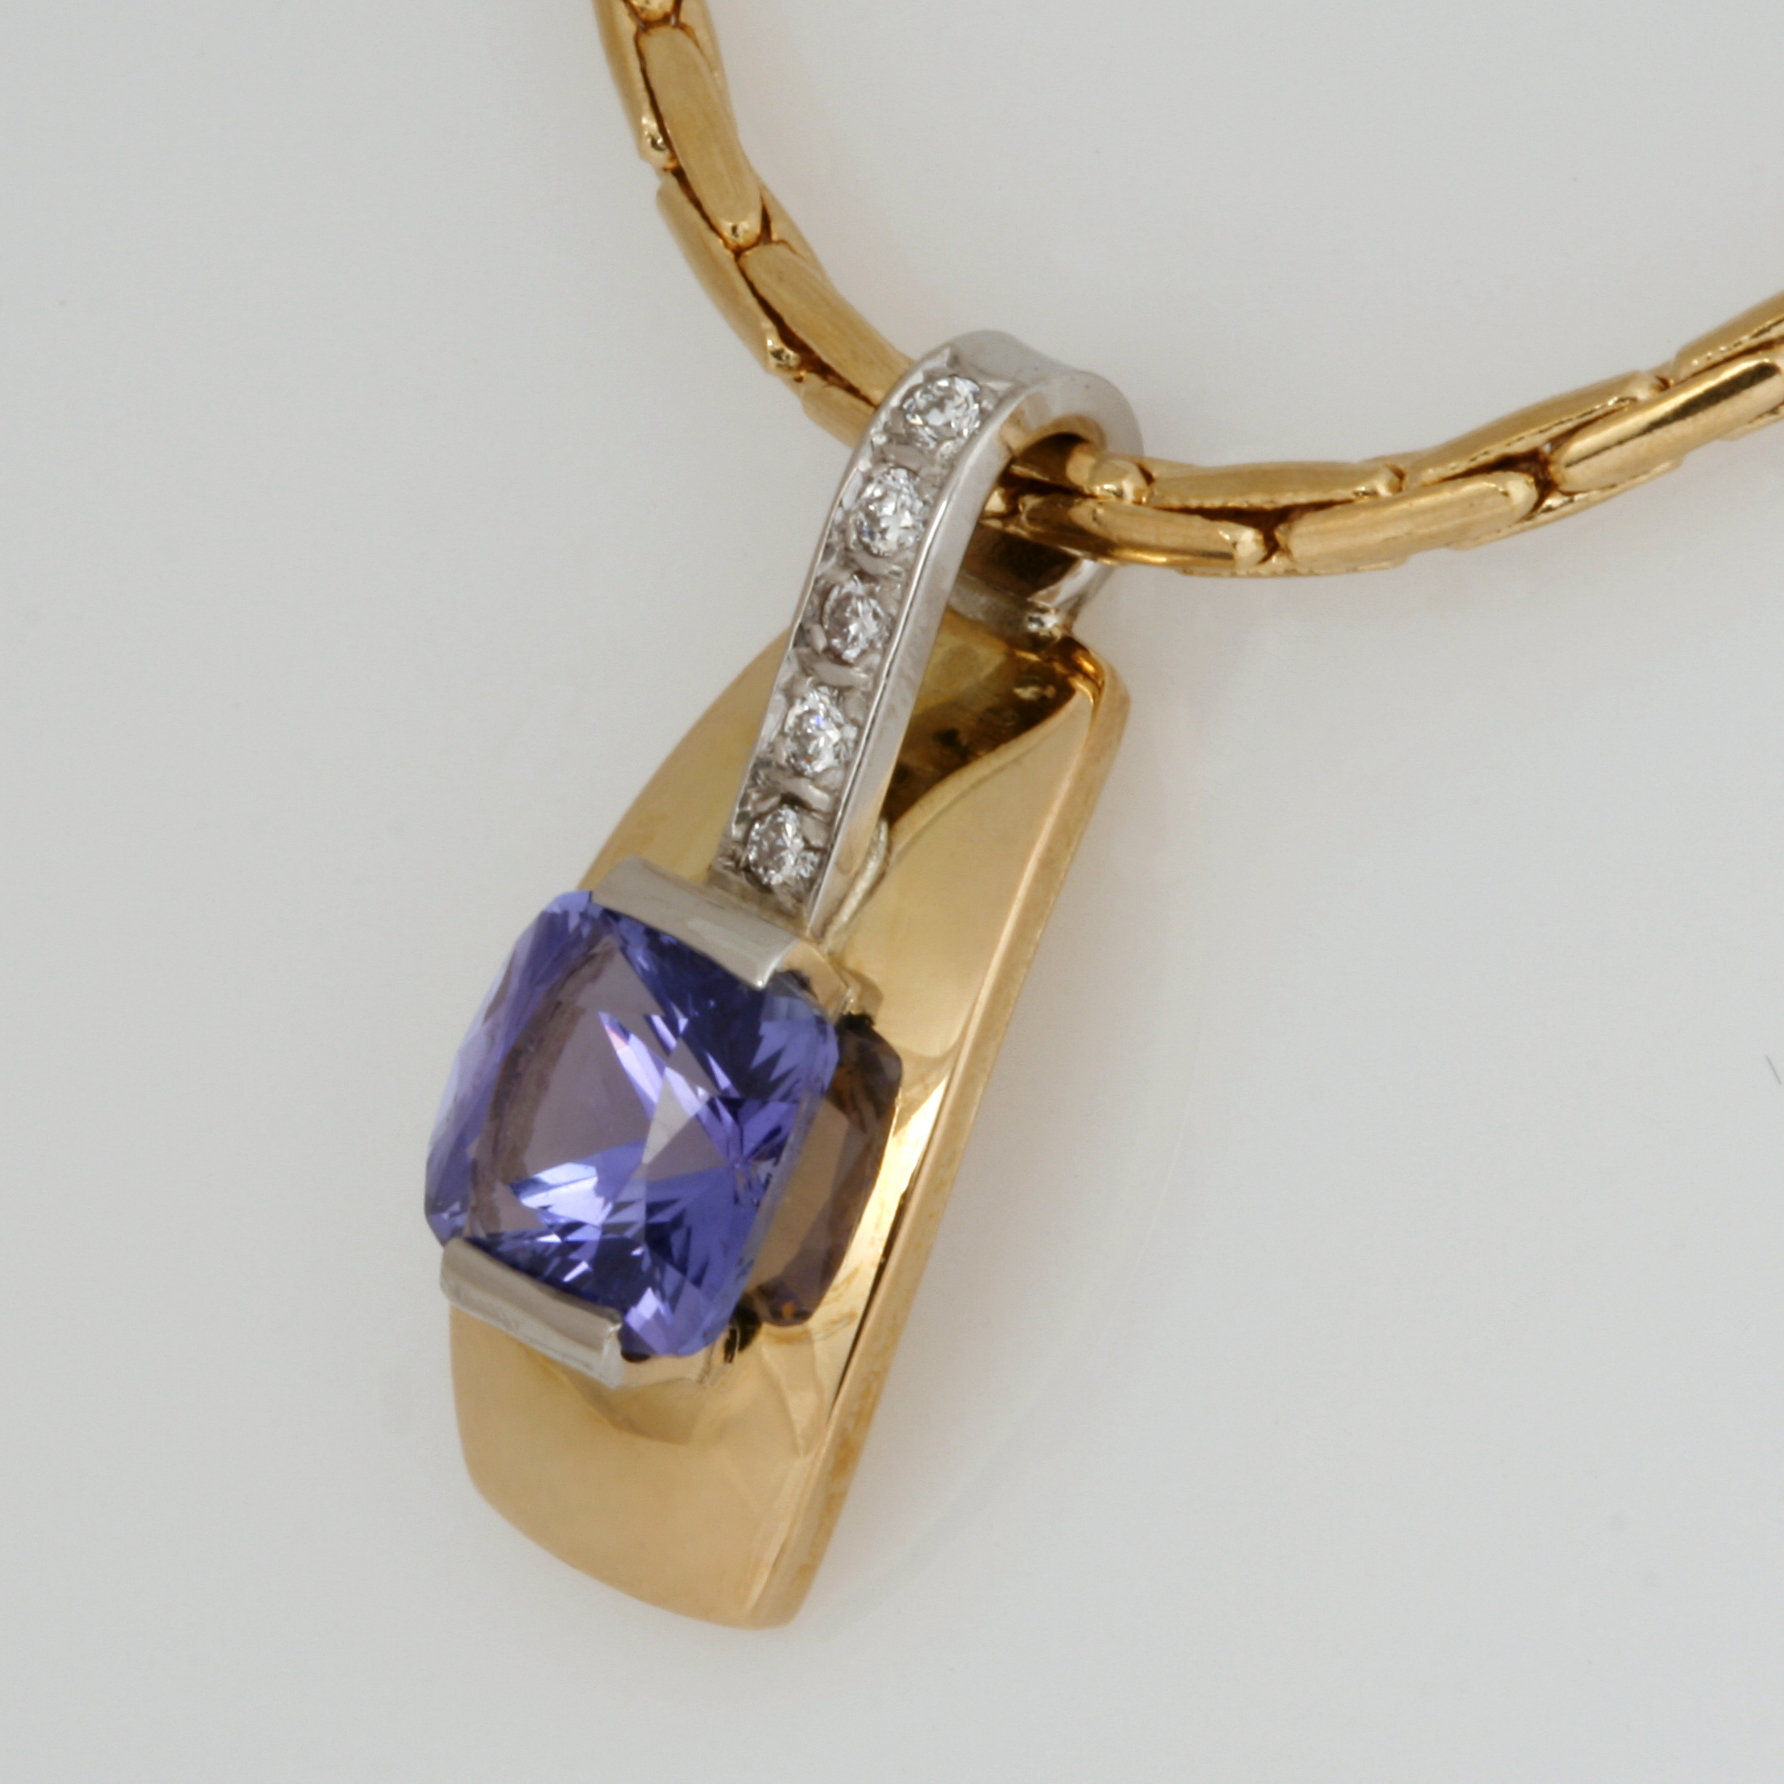 Handmade ladies 18ct yellow gold and palladium pendant featuring a tanzanite and diamonds